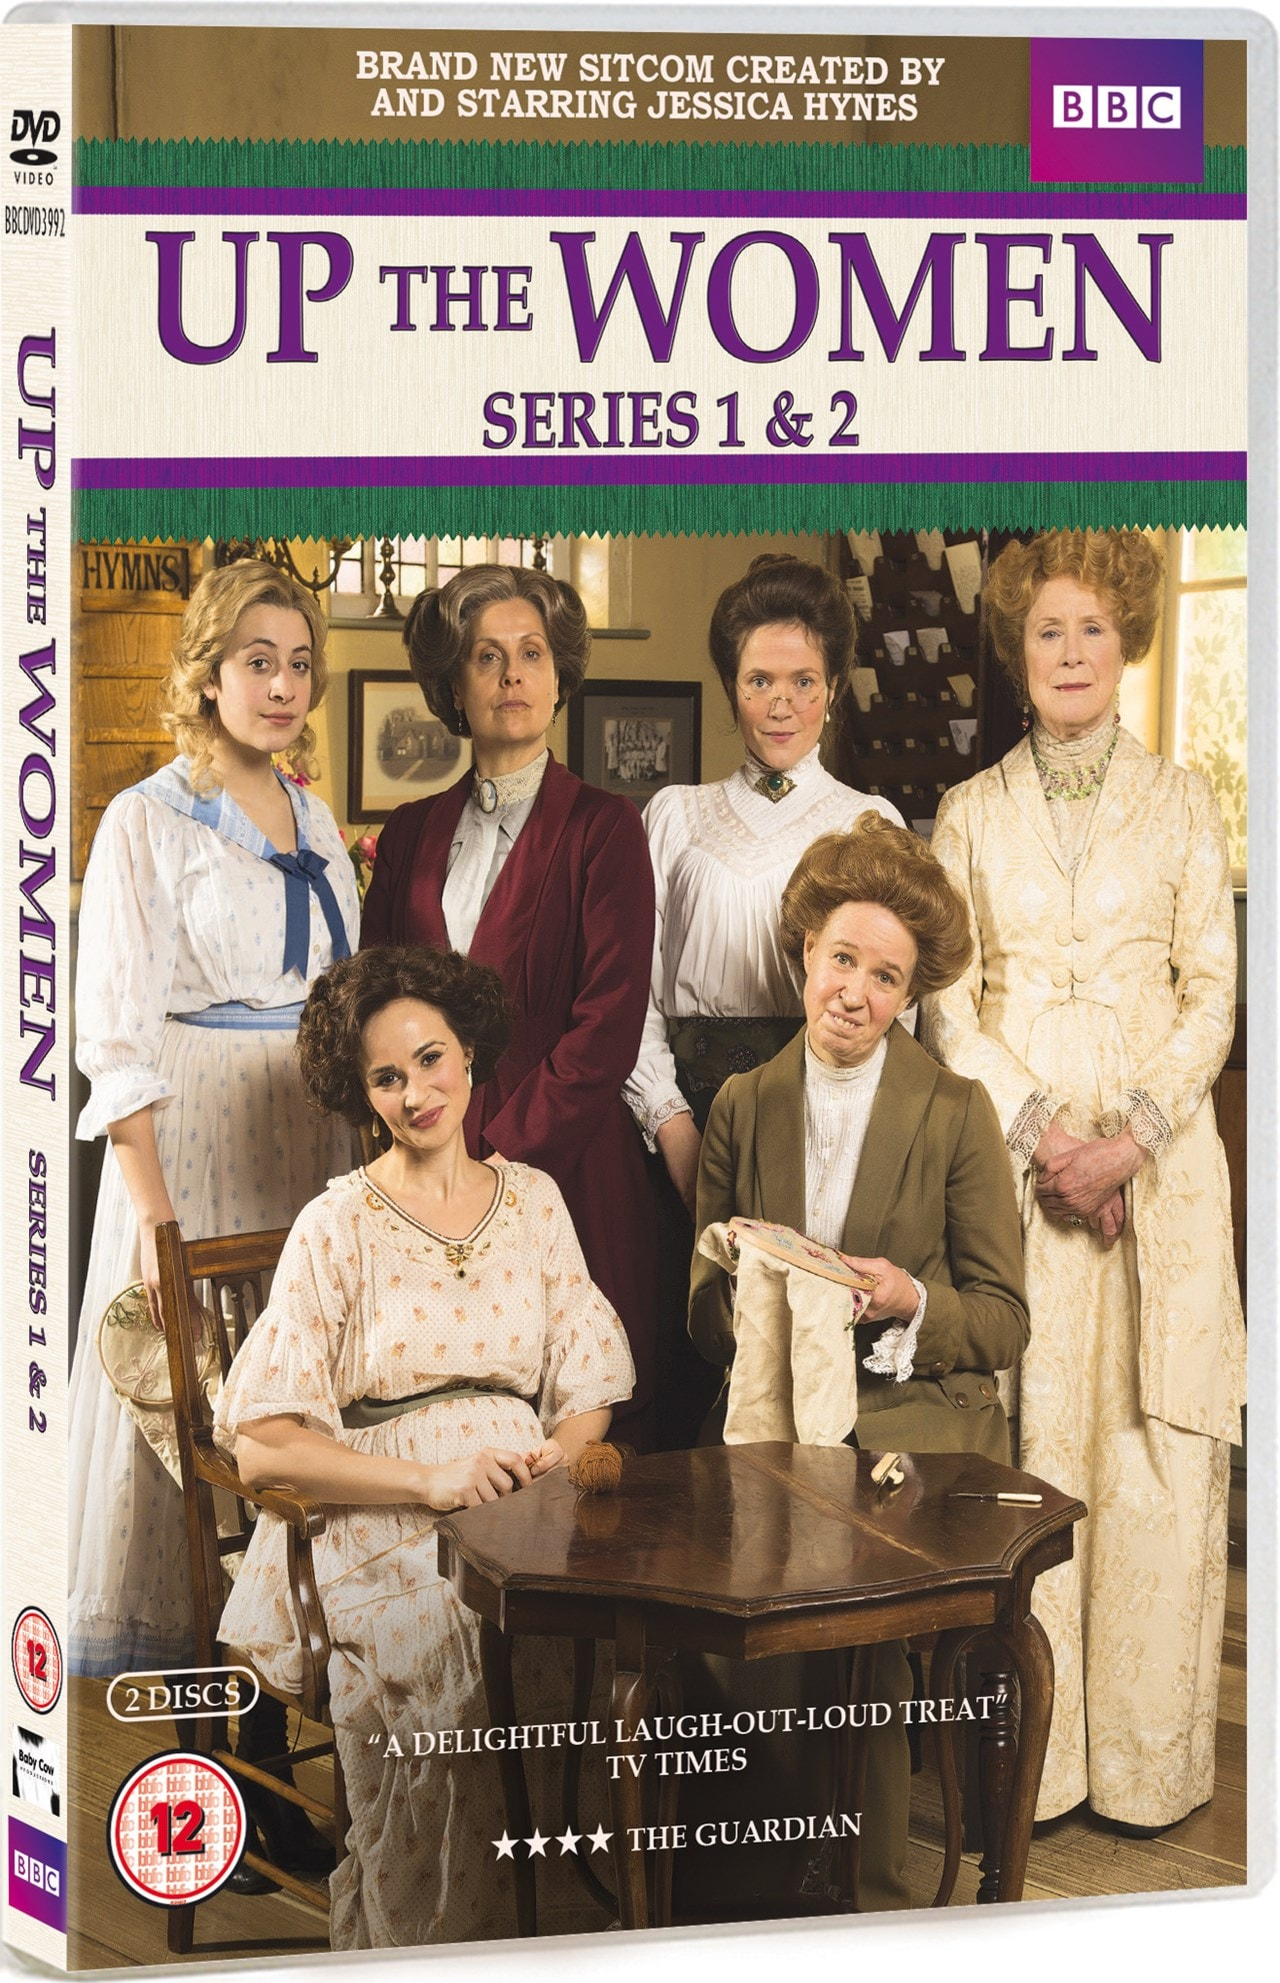 Up the Women: Series 1 and 2 - 2